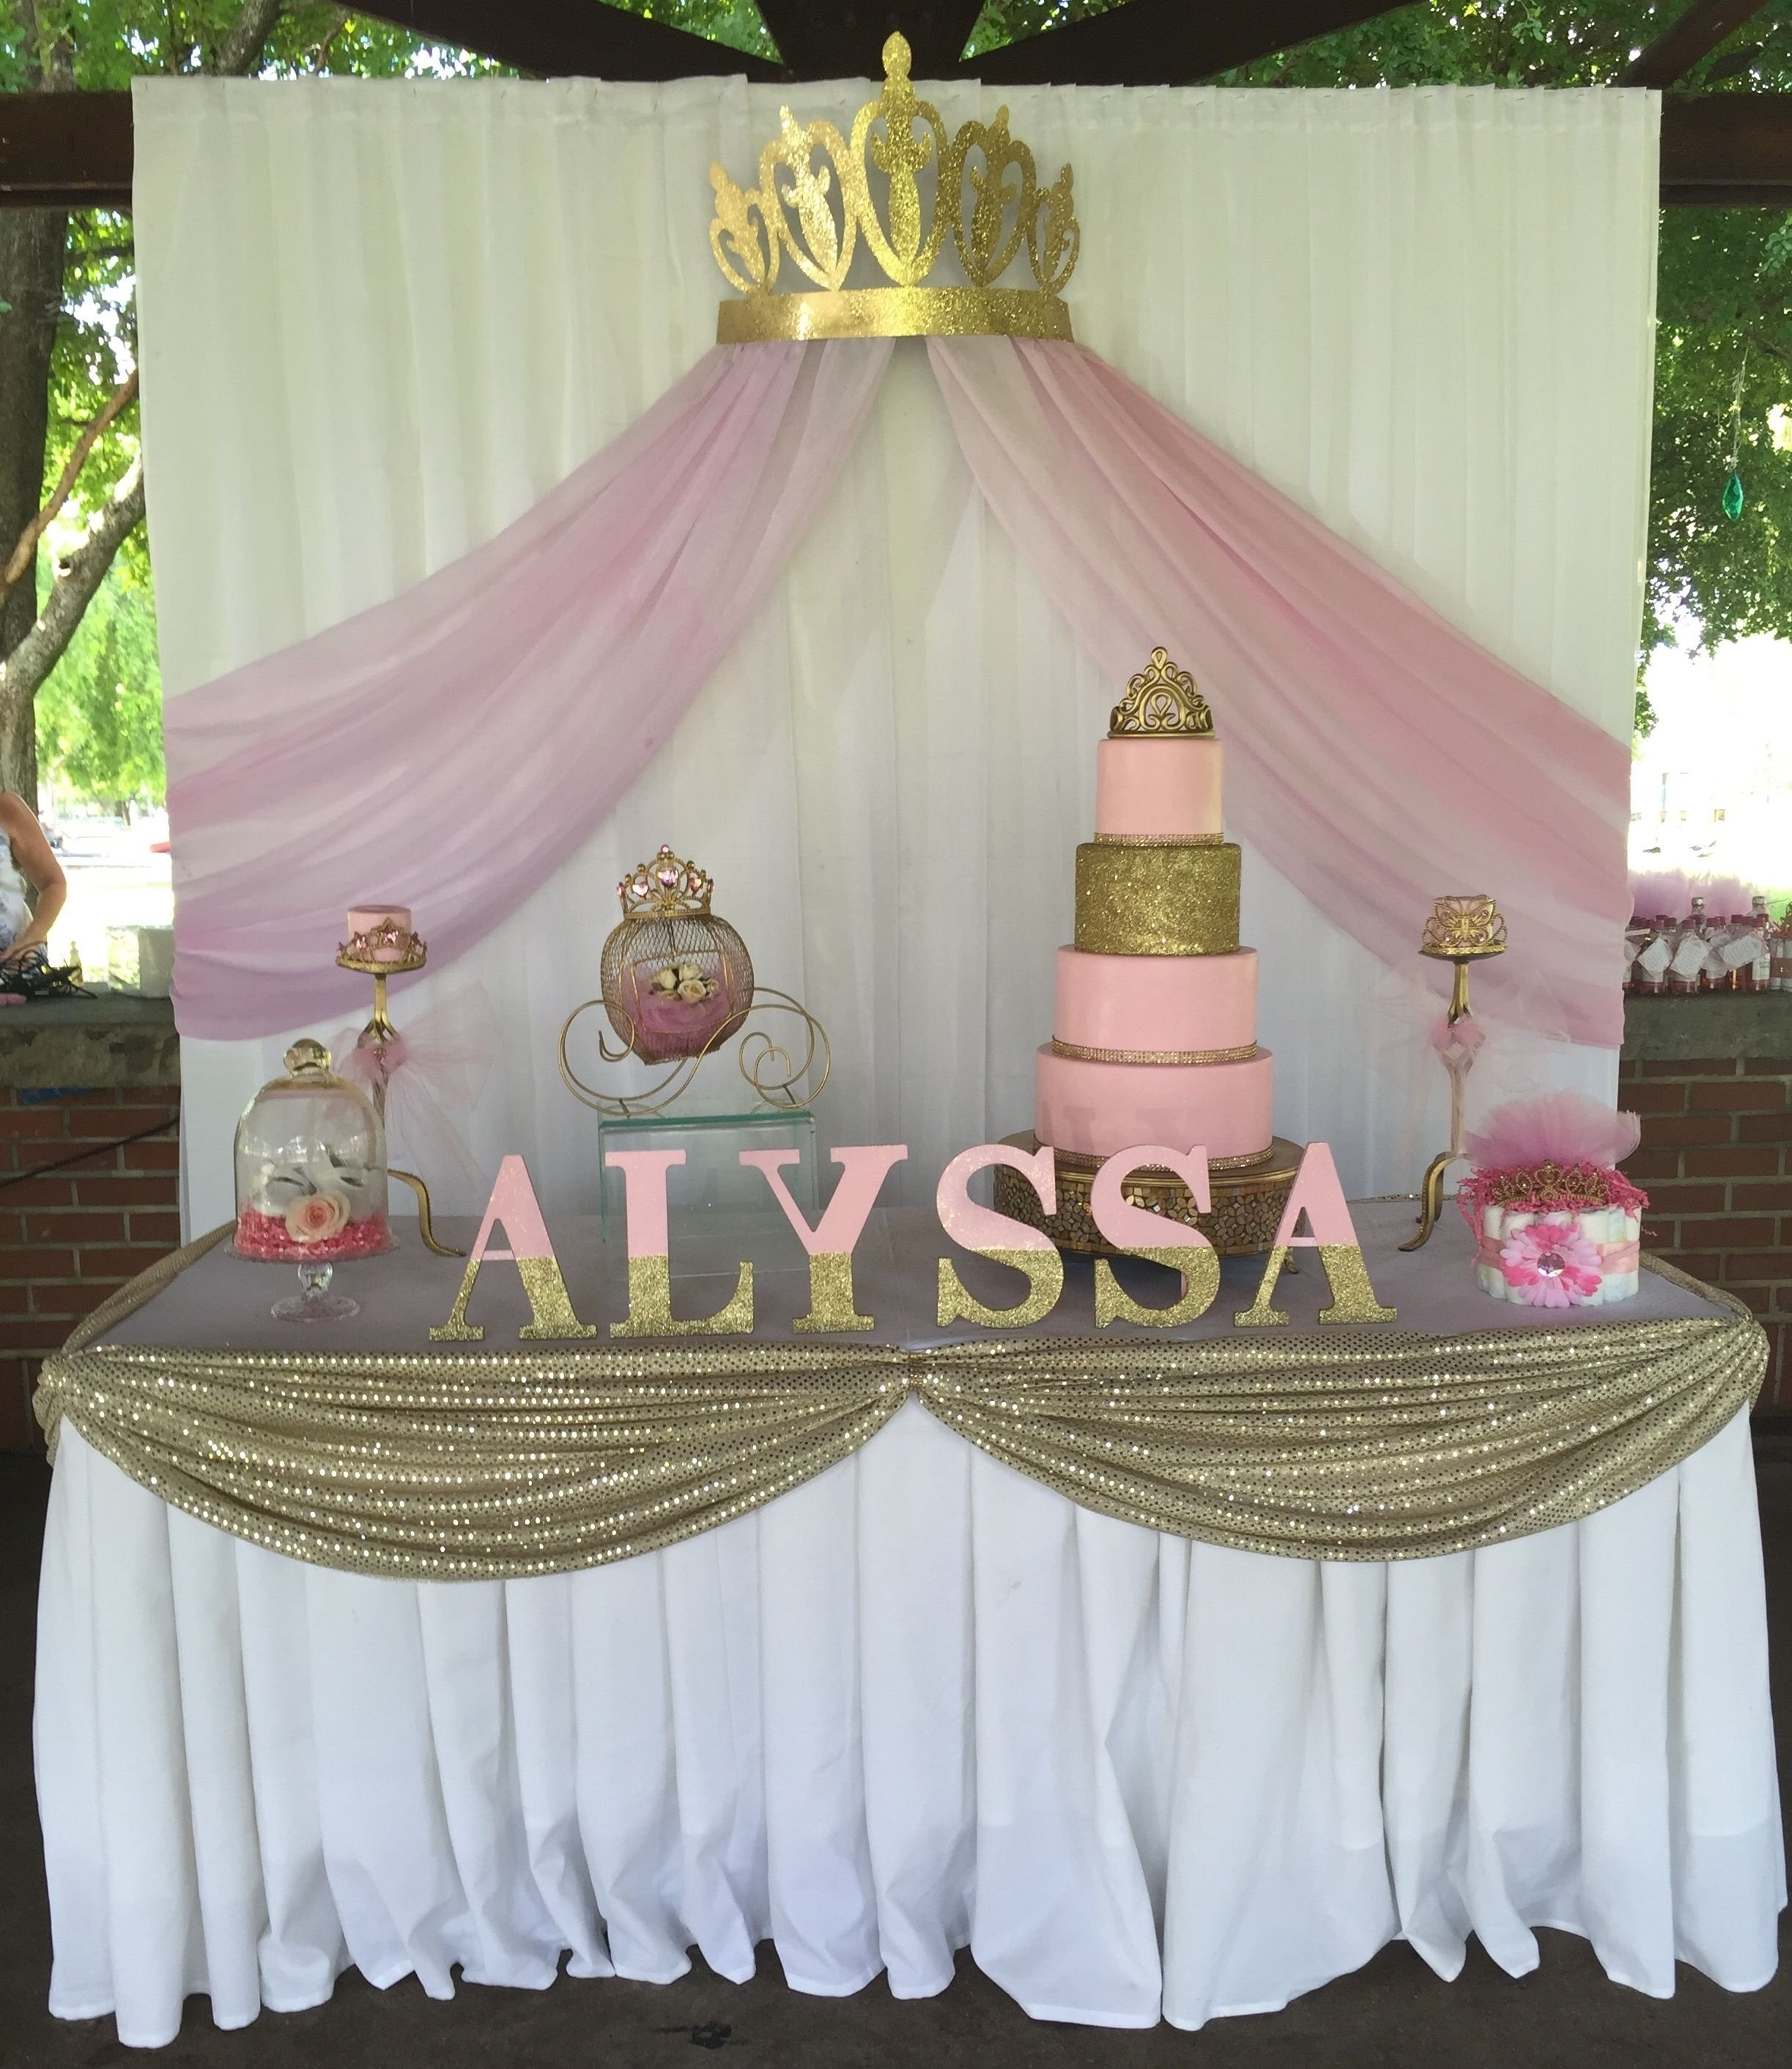 10 Spectacular Princess Theme Baby Shower Ideas princess baby shower cake table backdrop princess baby shower